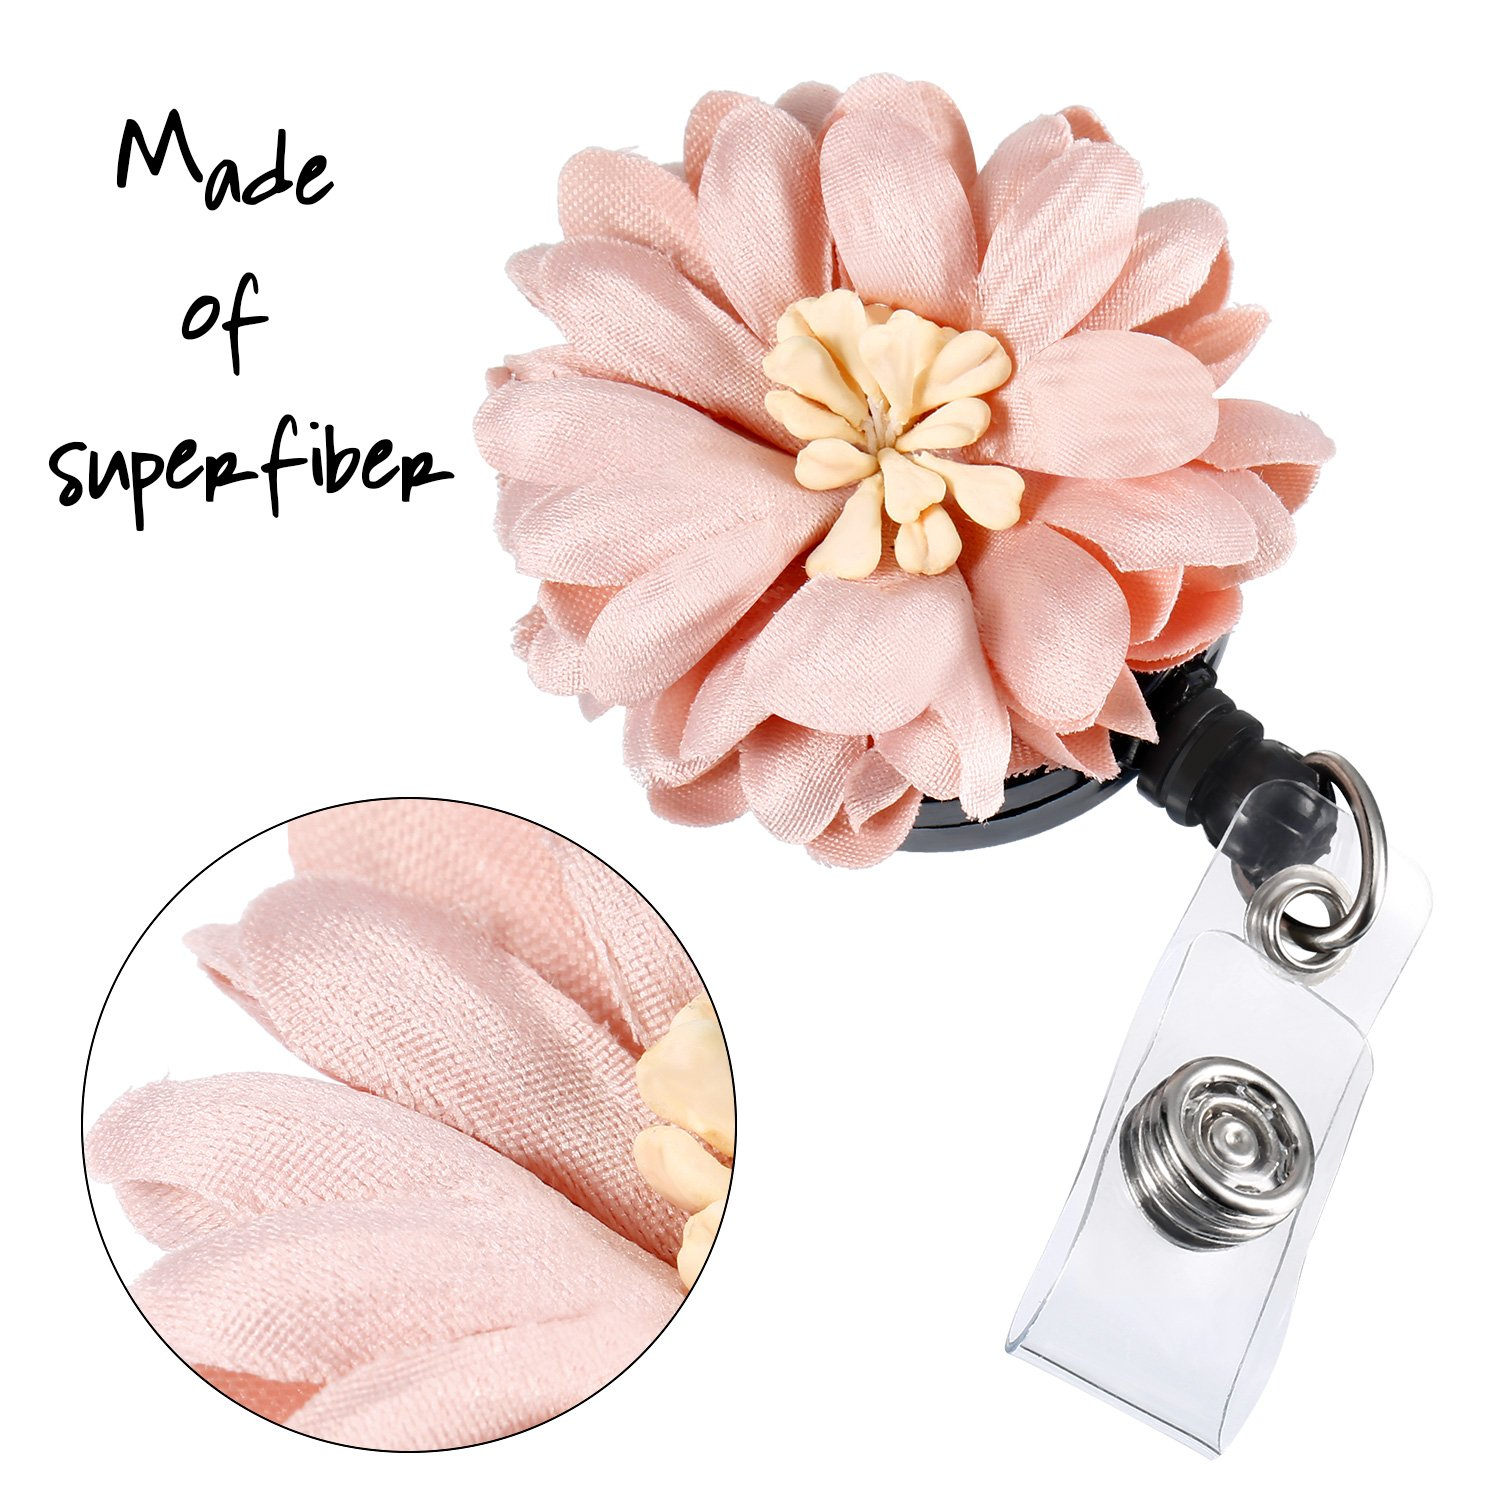 10 Pieces Daisy Retractable Badge Holder with Alligator Clip, Badge Clips ID Badge Reel Clip on Card Holders